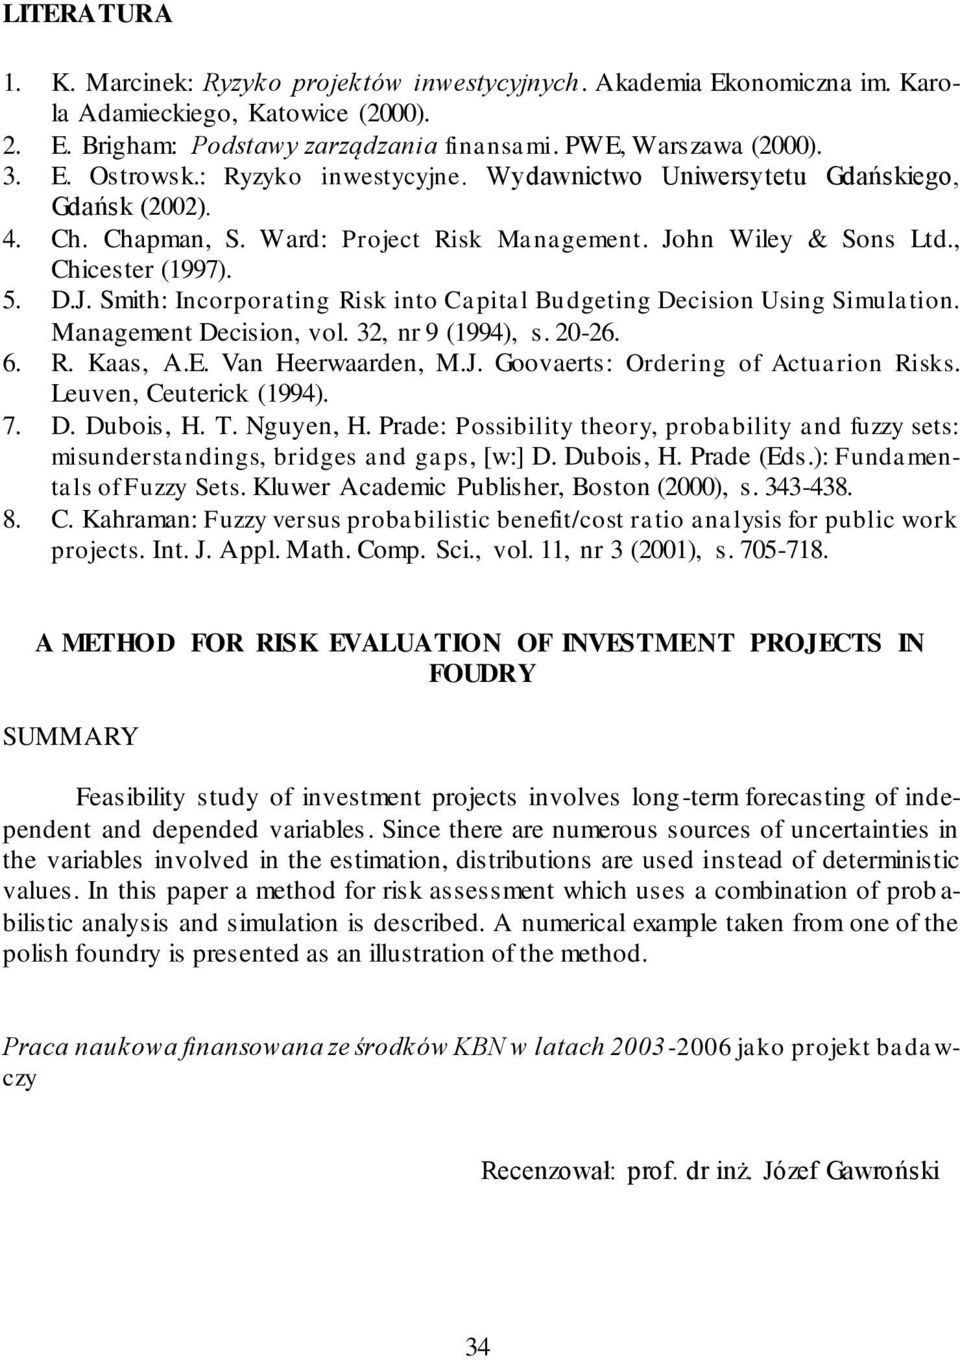 hn Wiley & Sons Ltd., Chicester (1997). 5. D.J. Smith: Incorporating Risk into Capital Budgeting Decision Using Simulation. Management Decision, vol. 32, nr 9 (1994), s. 20-26. 6. R. Kaas, A.E.